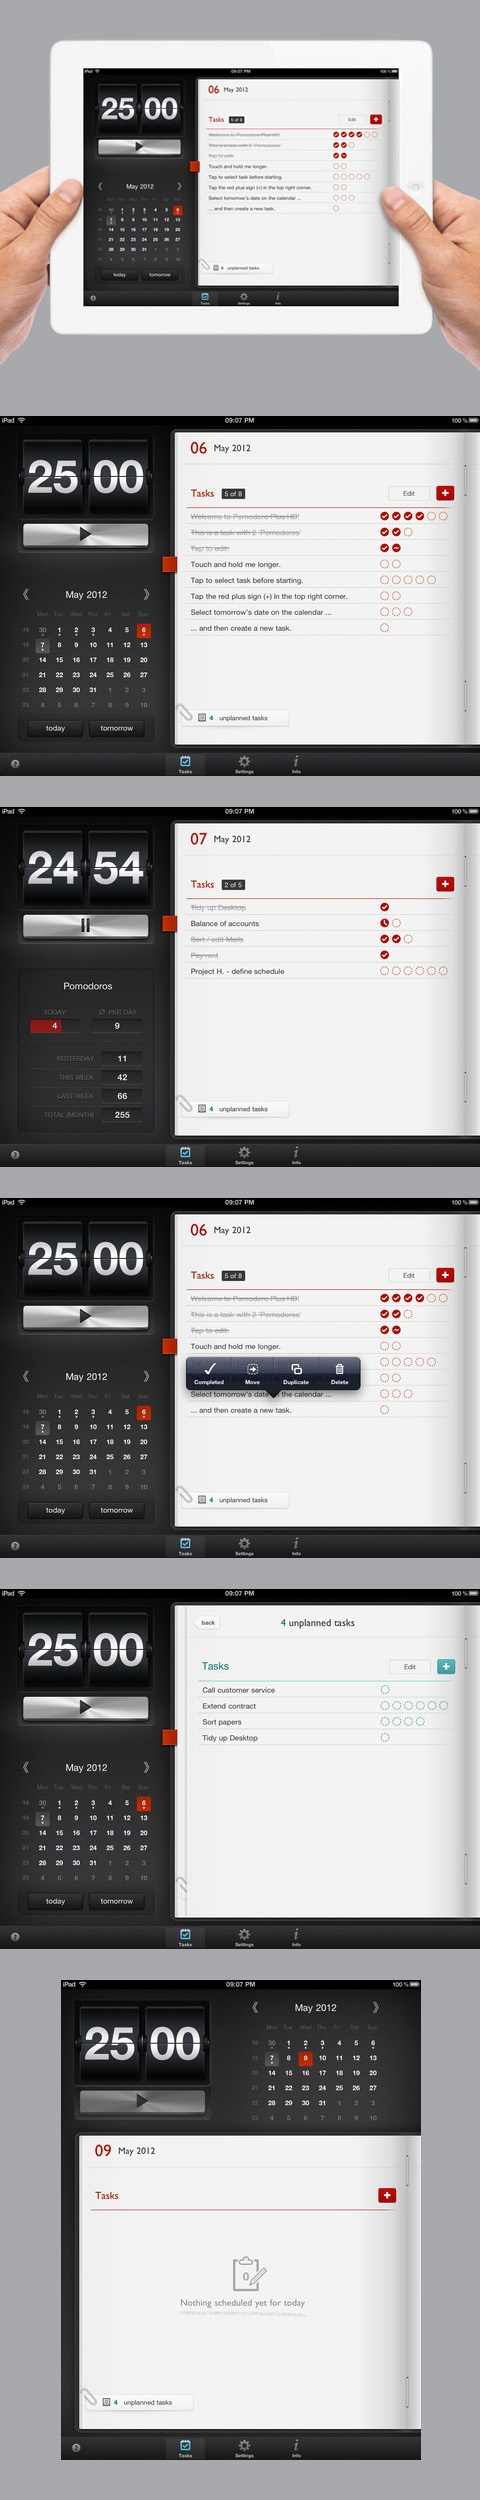 Pomodoro Plus HD - Time Management Tool